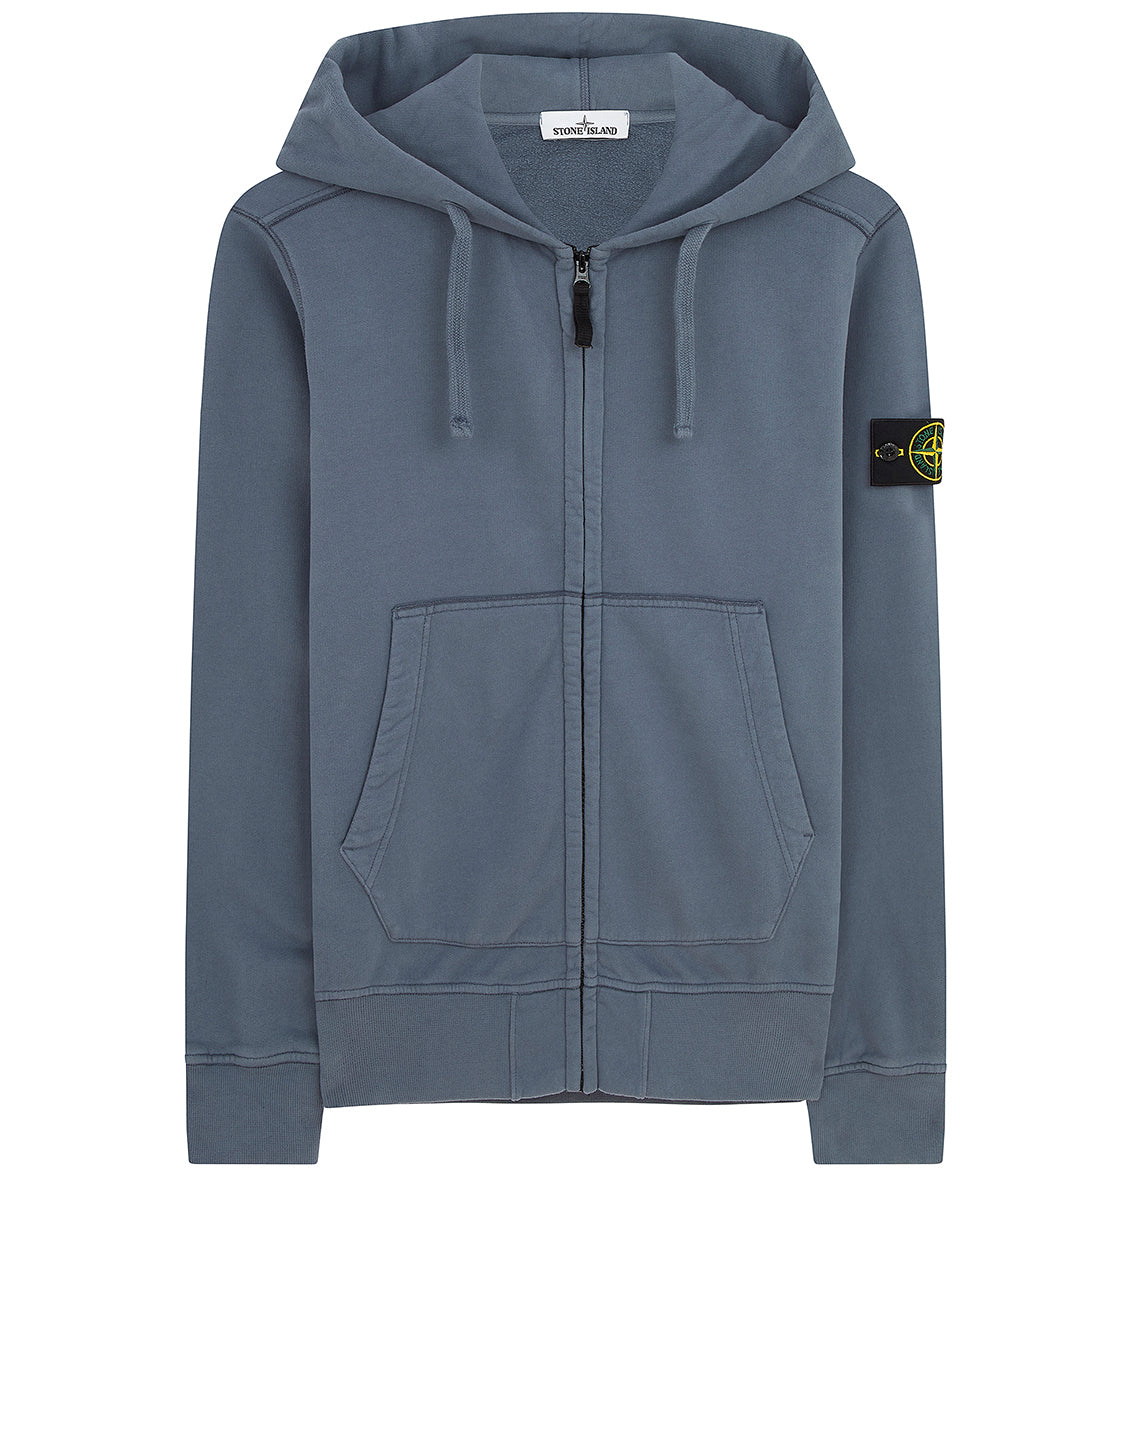 60220 Hooded Sweatshirt in Dark Blue